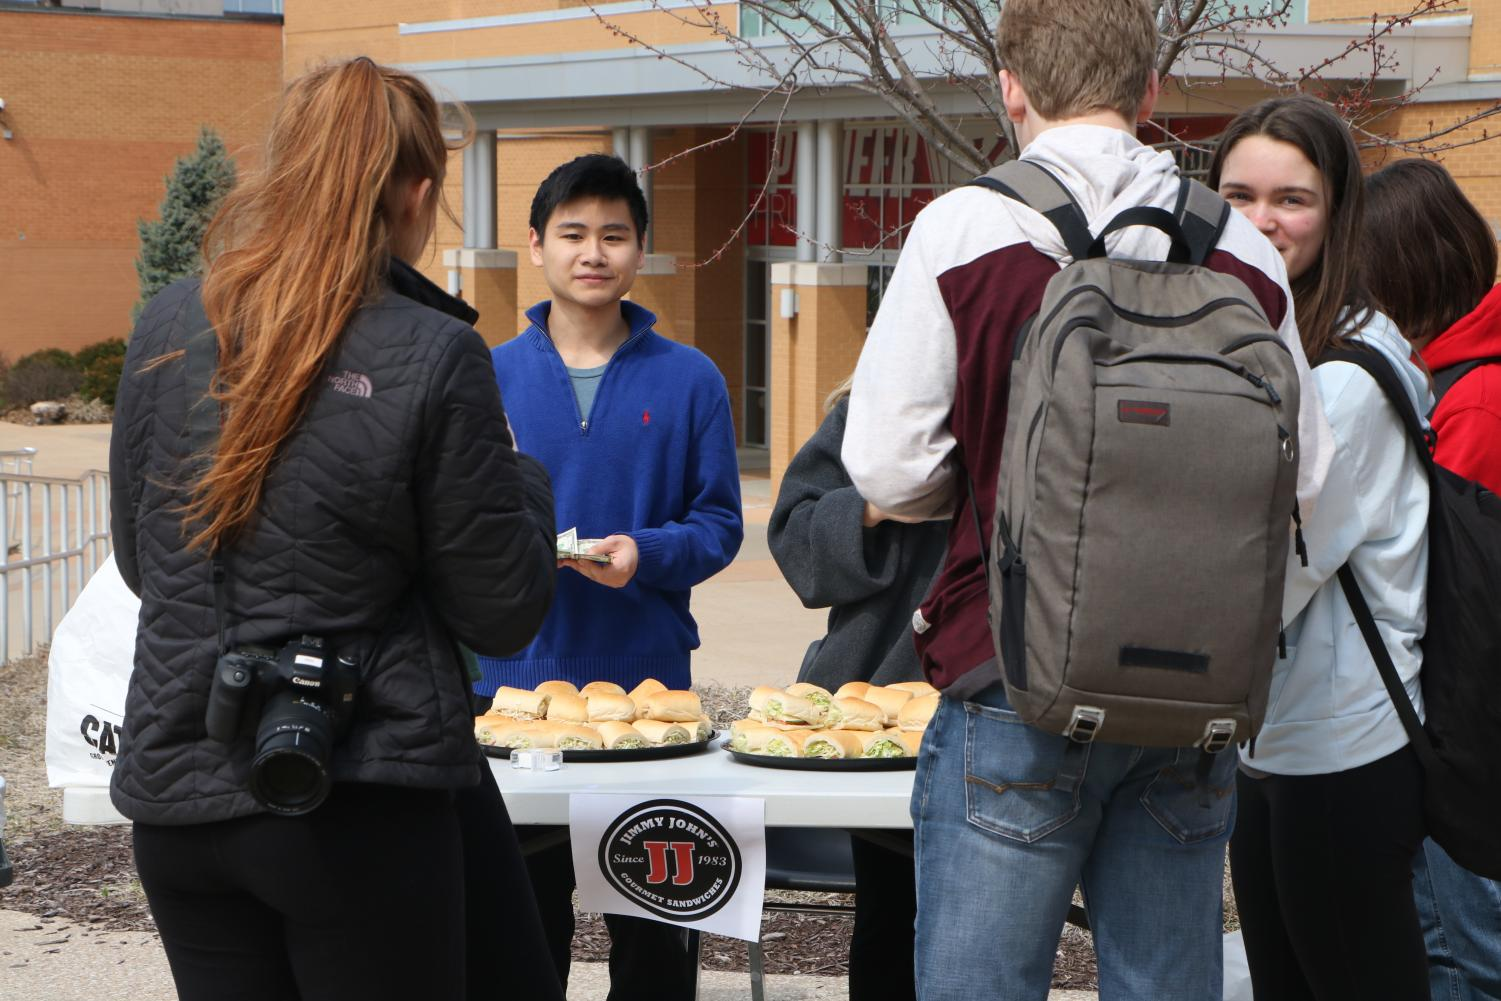 Jimmy+Tang%2C+senior%2C+hands+out+sandwiches+donated+that+Jimmy+Johns+donated+to+the+event.+